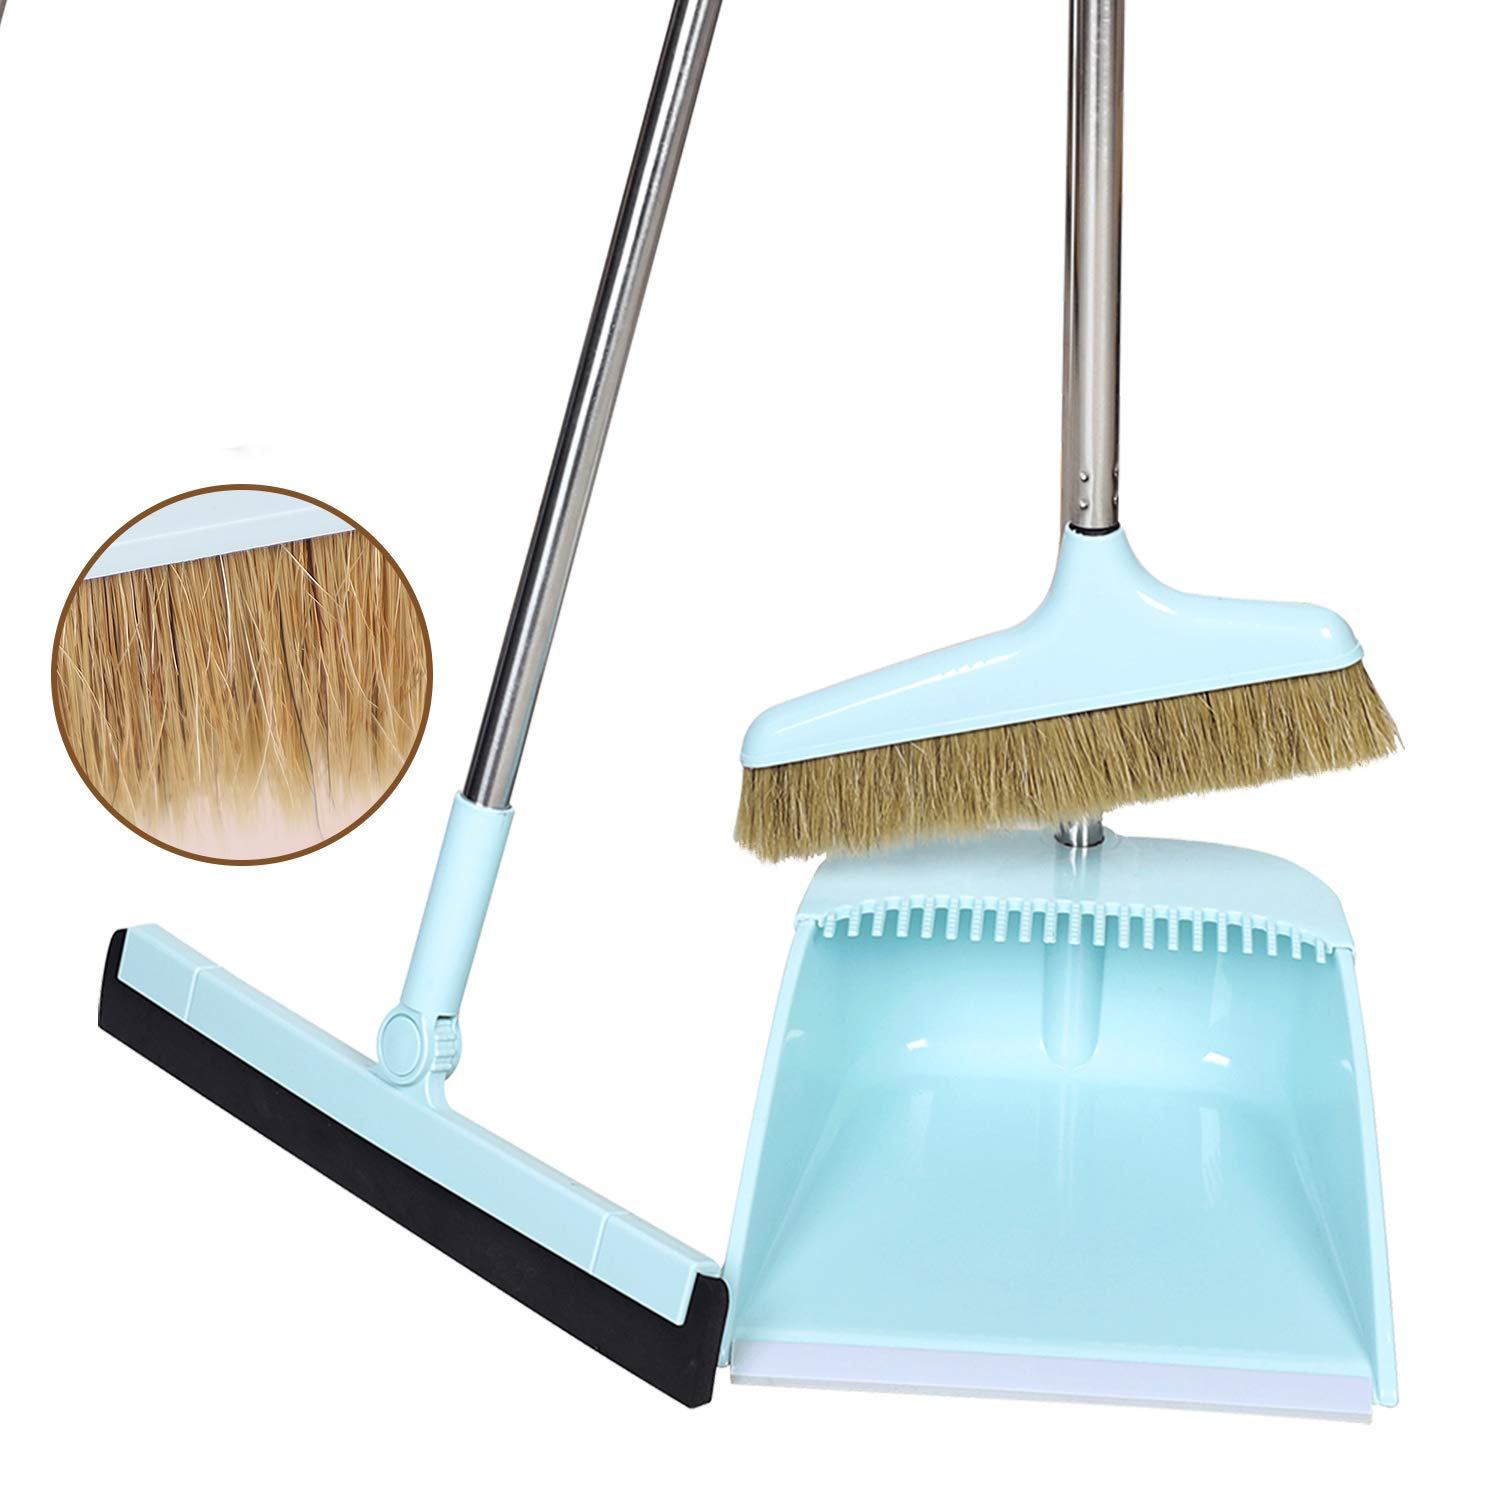 Midoneat Broom and Dustpan Set Squeegee 3 Packs Good Grips Sweep Set with Long Handle Natural hog Bristle Broom Rubber Lip Dustpan with Comb 180° Rotation Wiper .Sweeping for Kitchen Lobby Office by midoneat